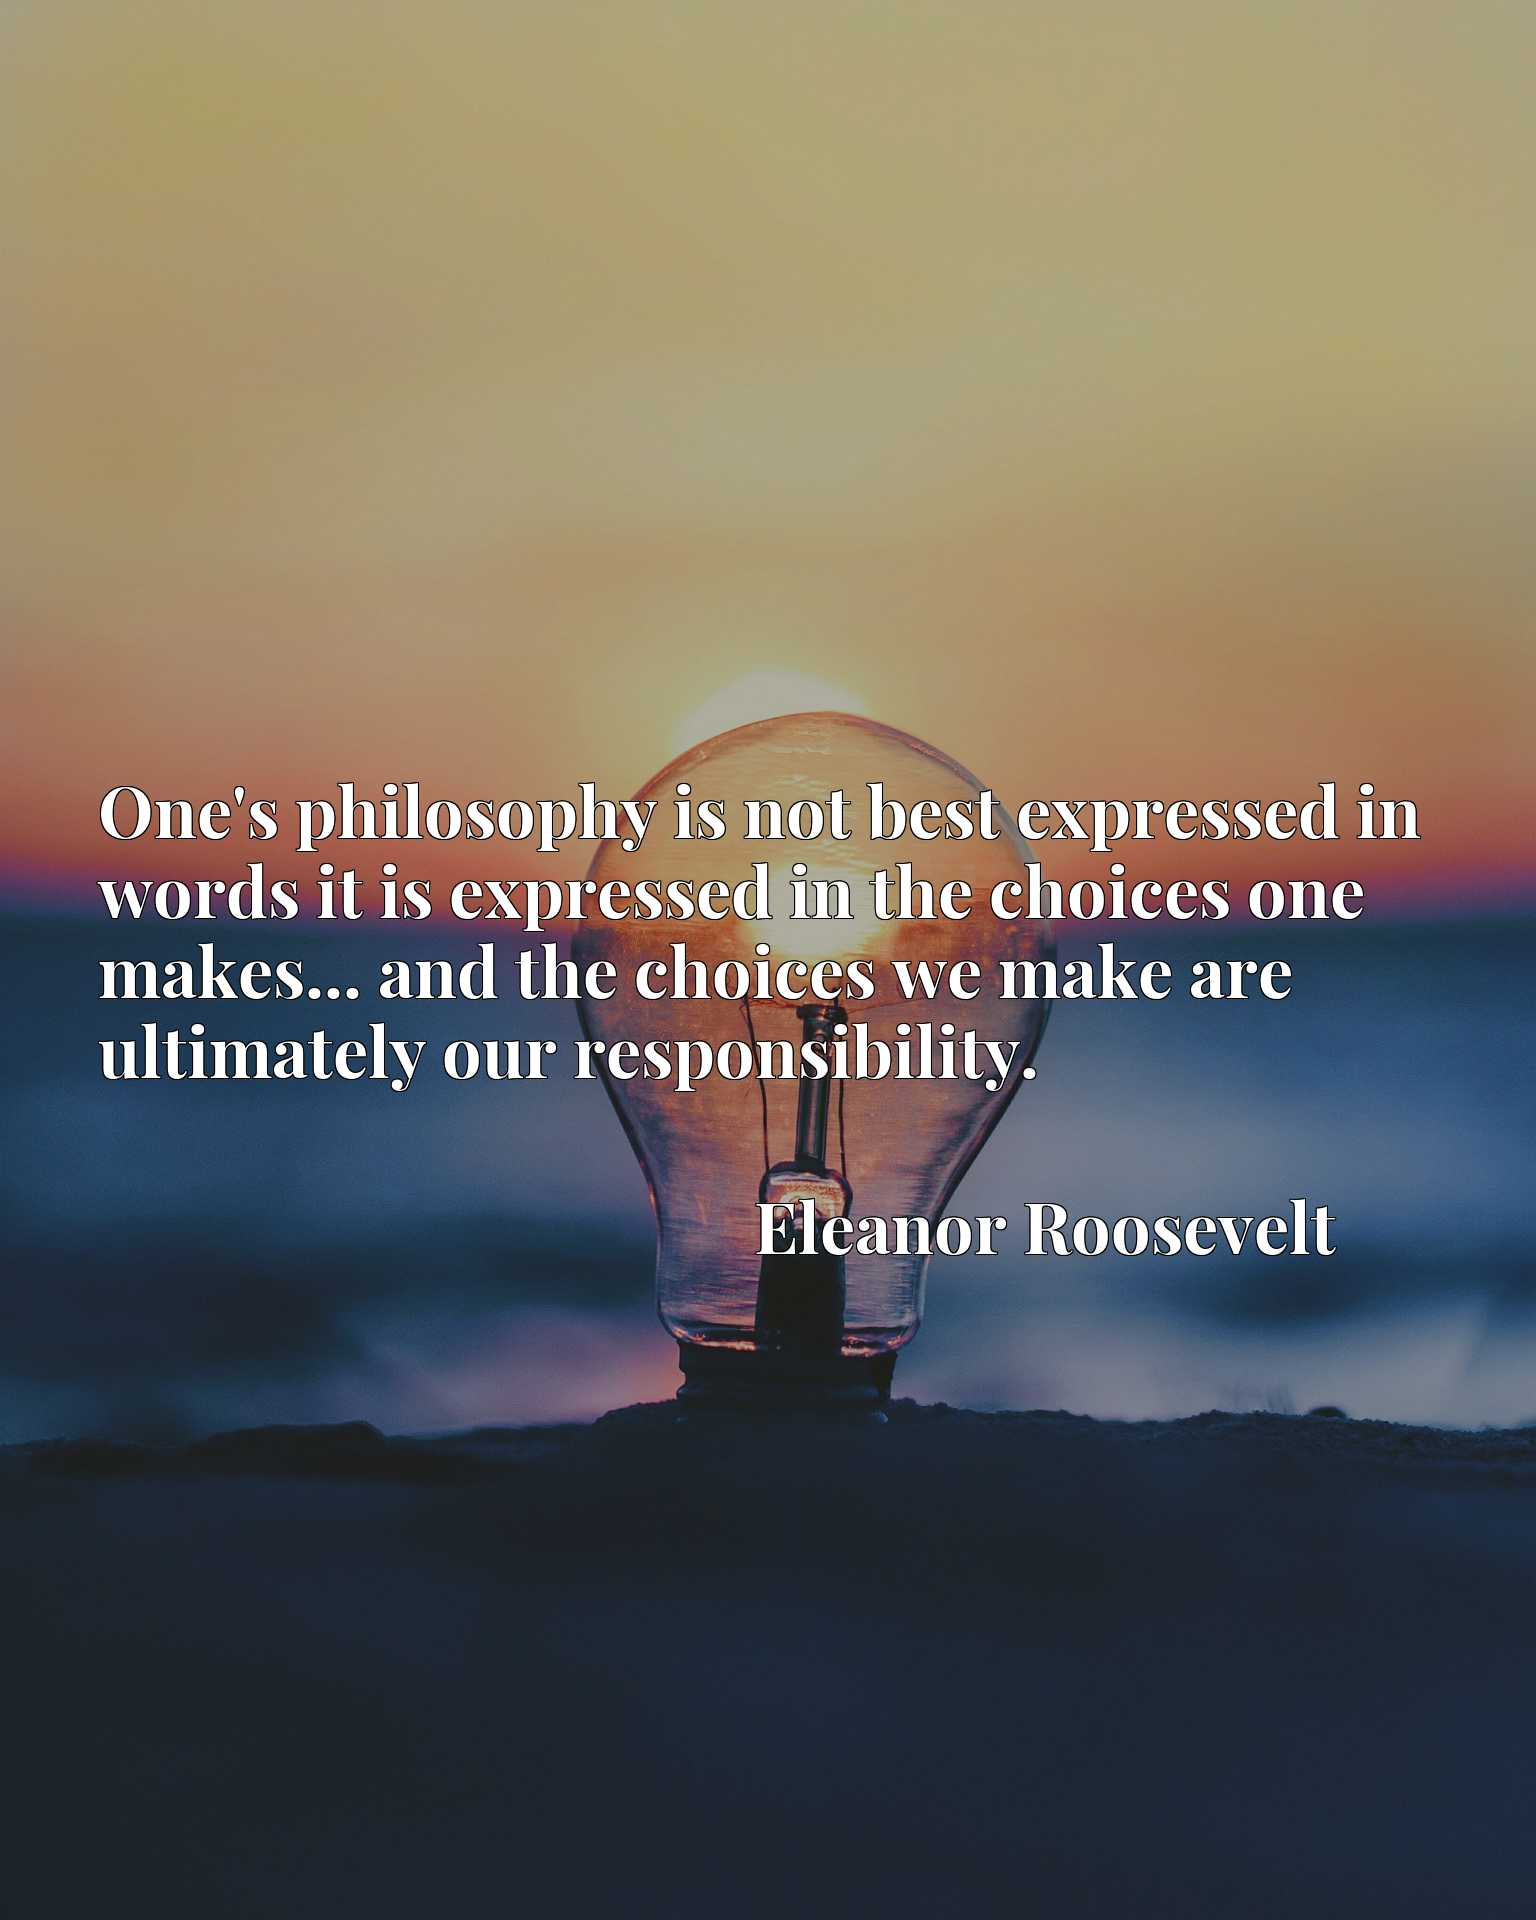 One's philosophy is not best expressed in words it is expressed in the choices one makes... and the choices we make are ultimately our responsibility.